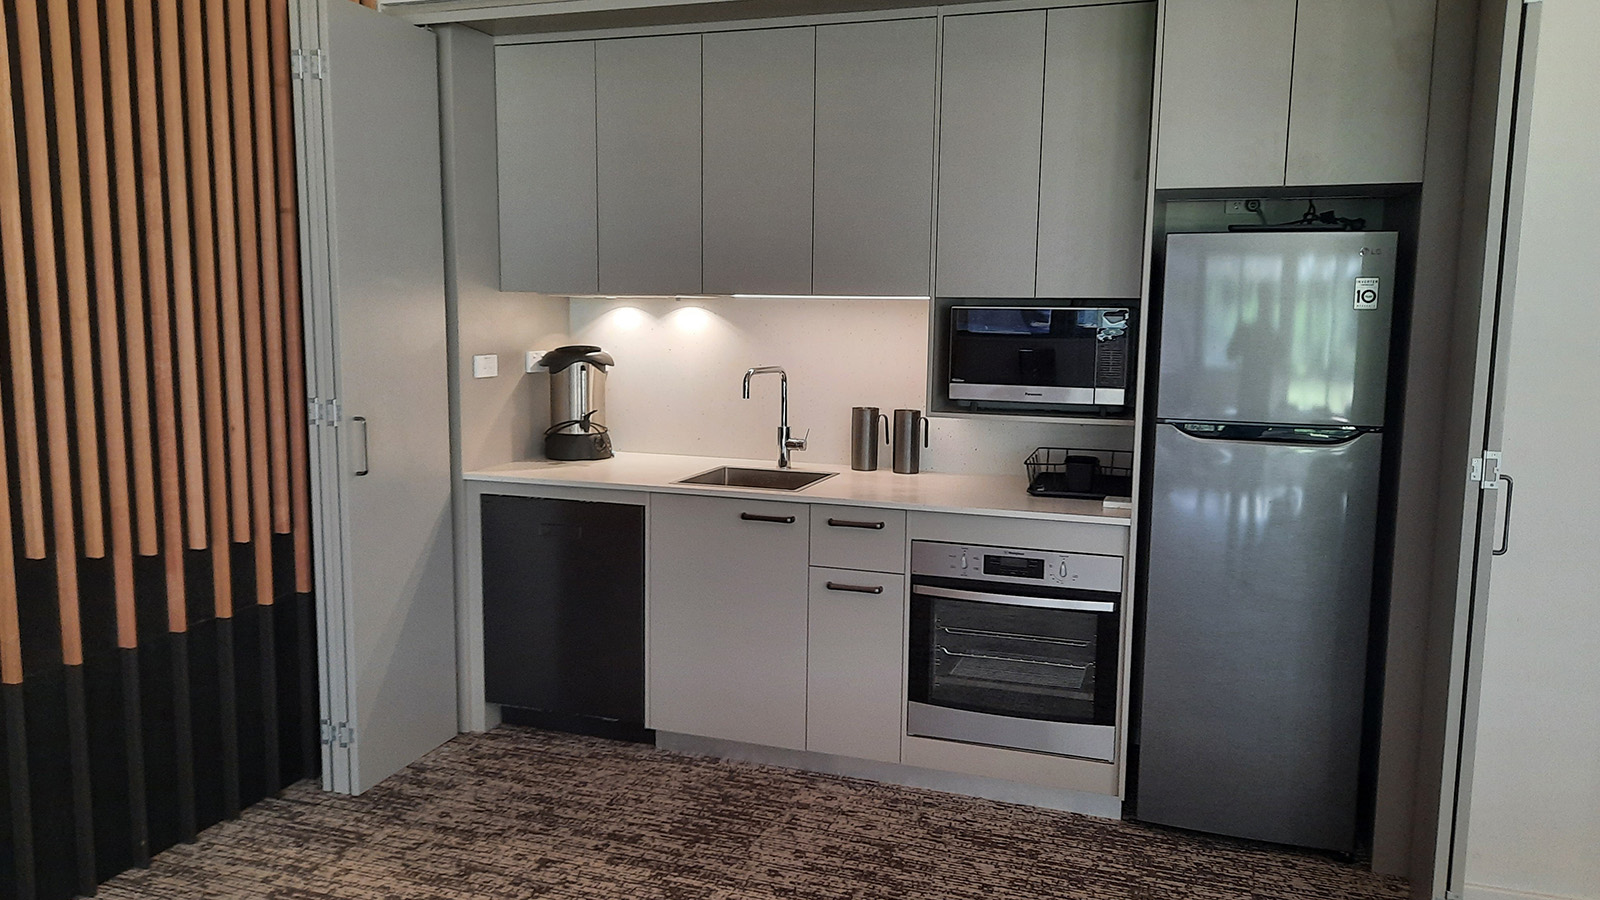 The kitchenette facilities in the Banksia Room